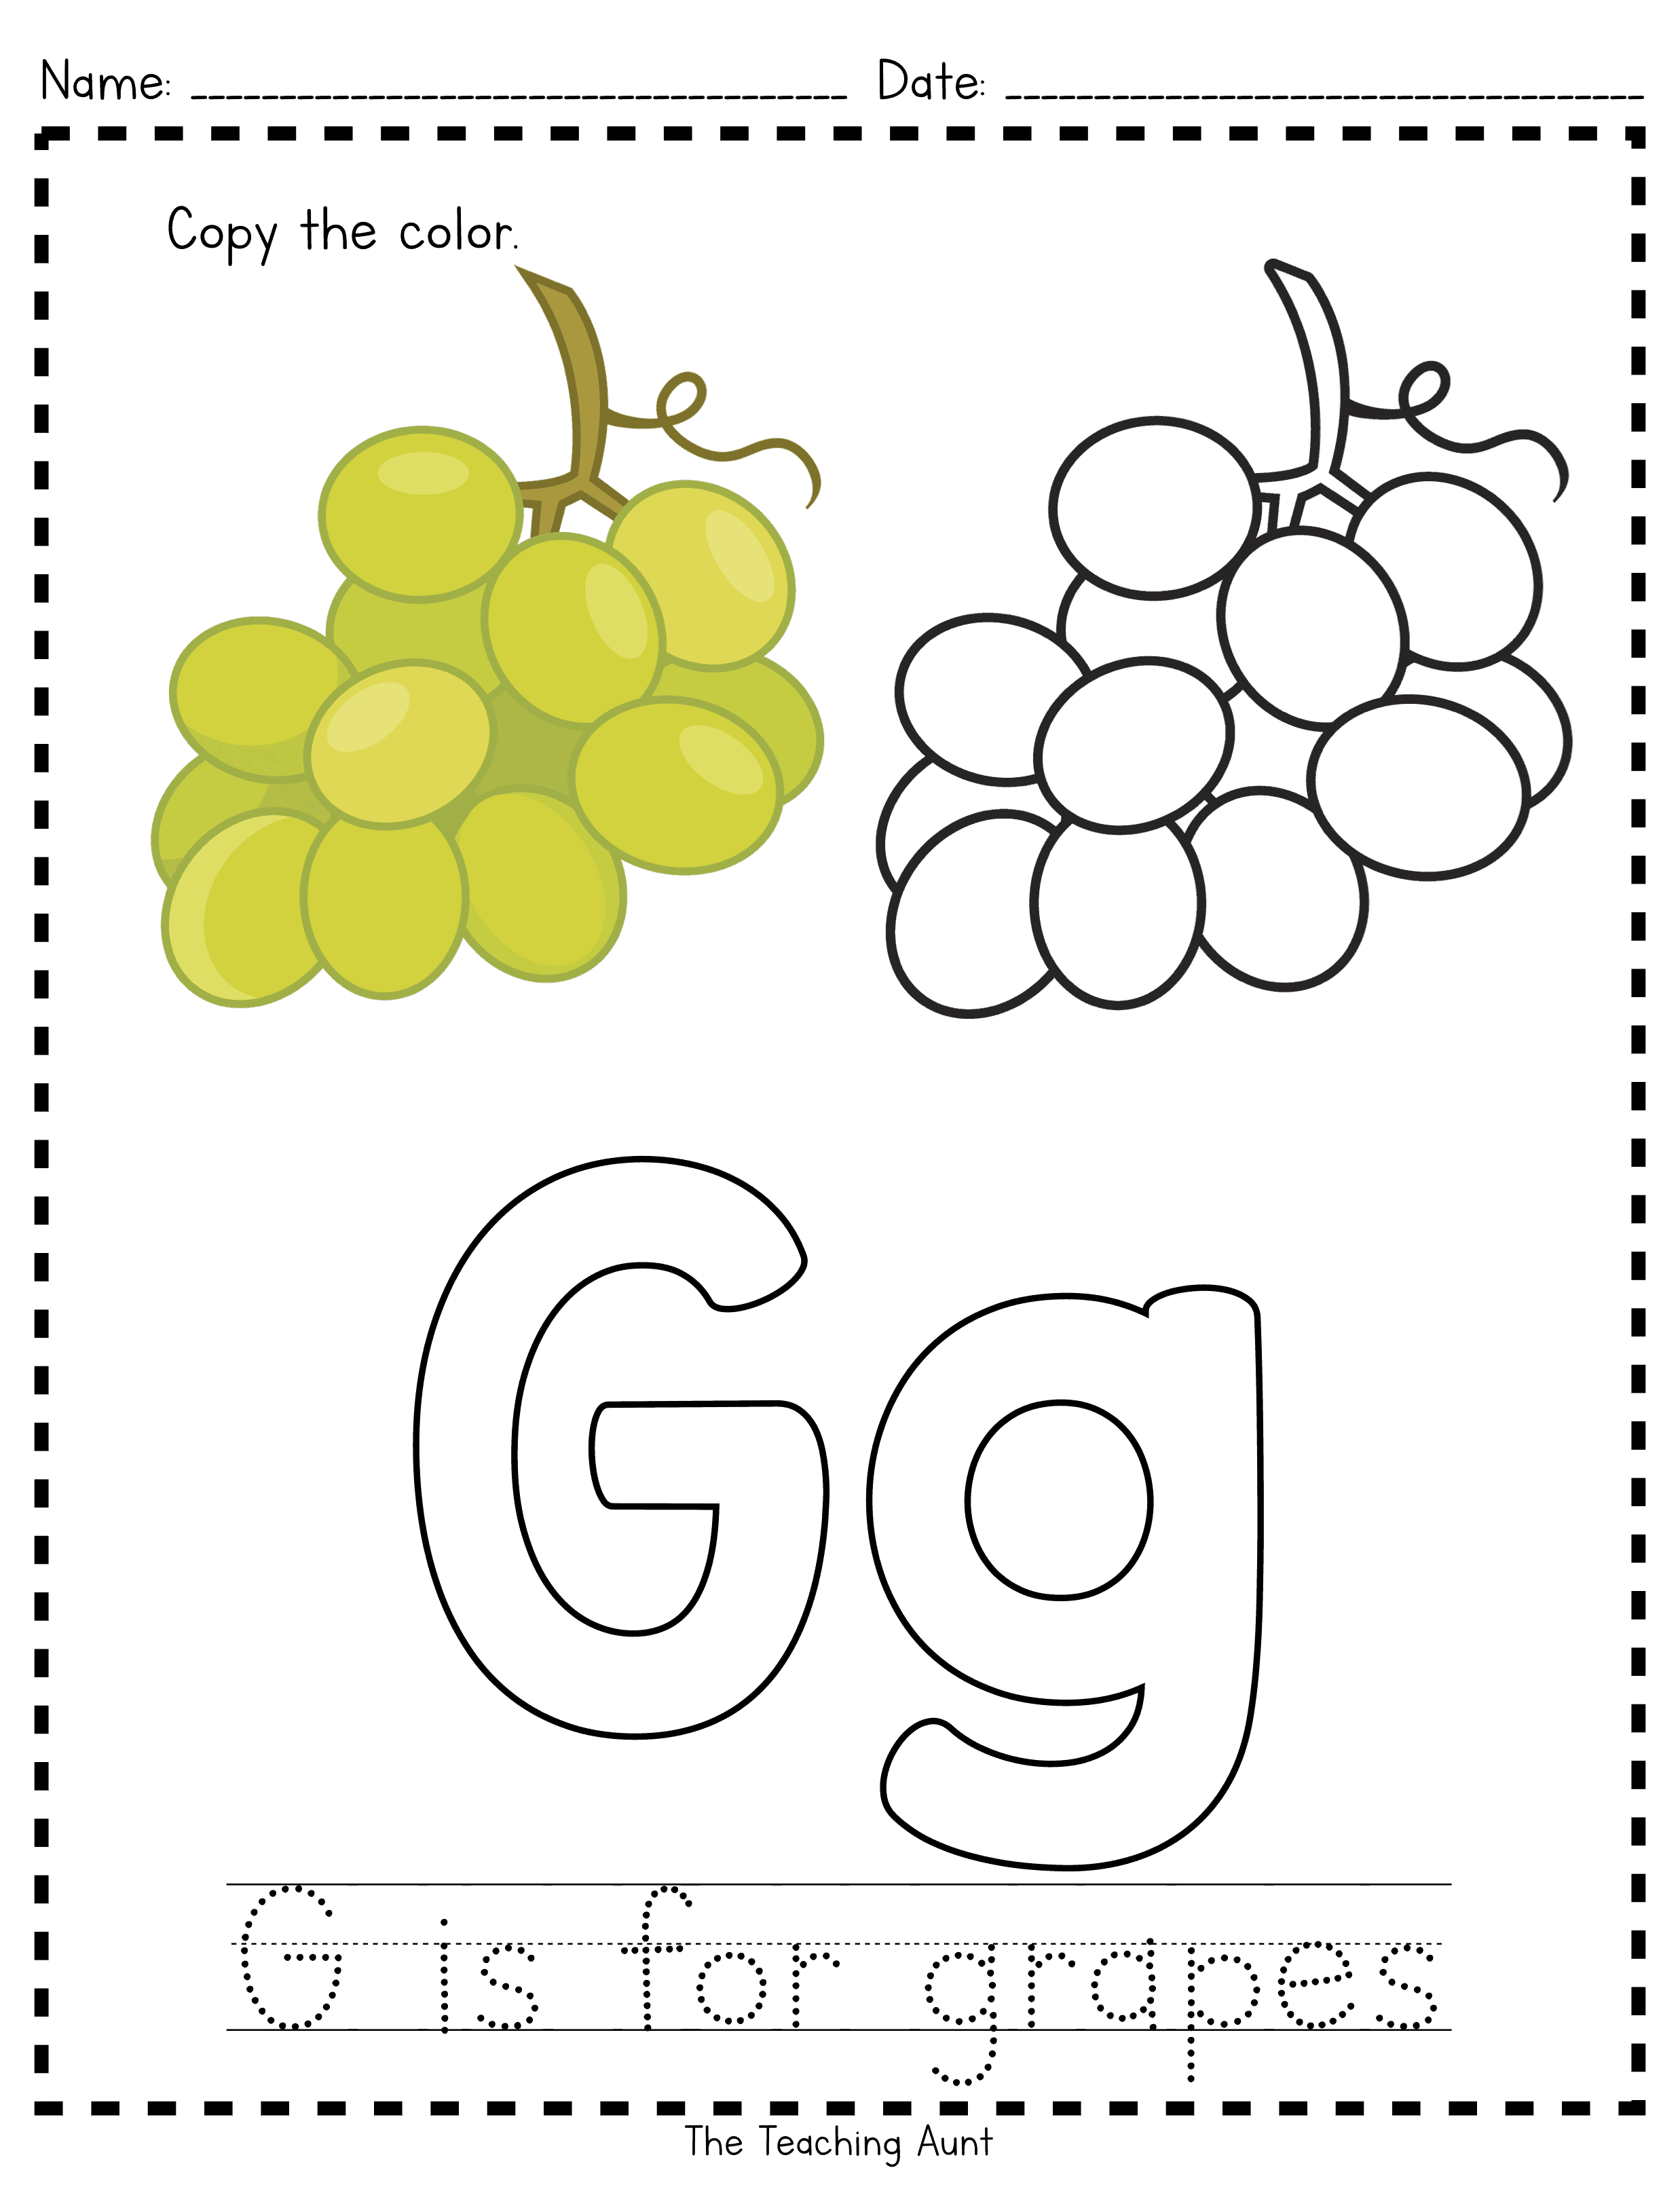 G is for Grapes: Paper Pasting Activity with Free Printable from The Teaching Aunt